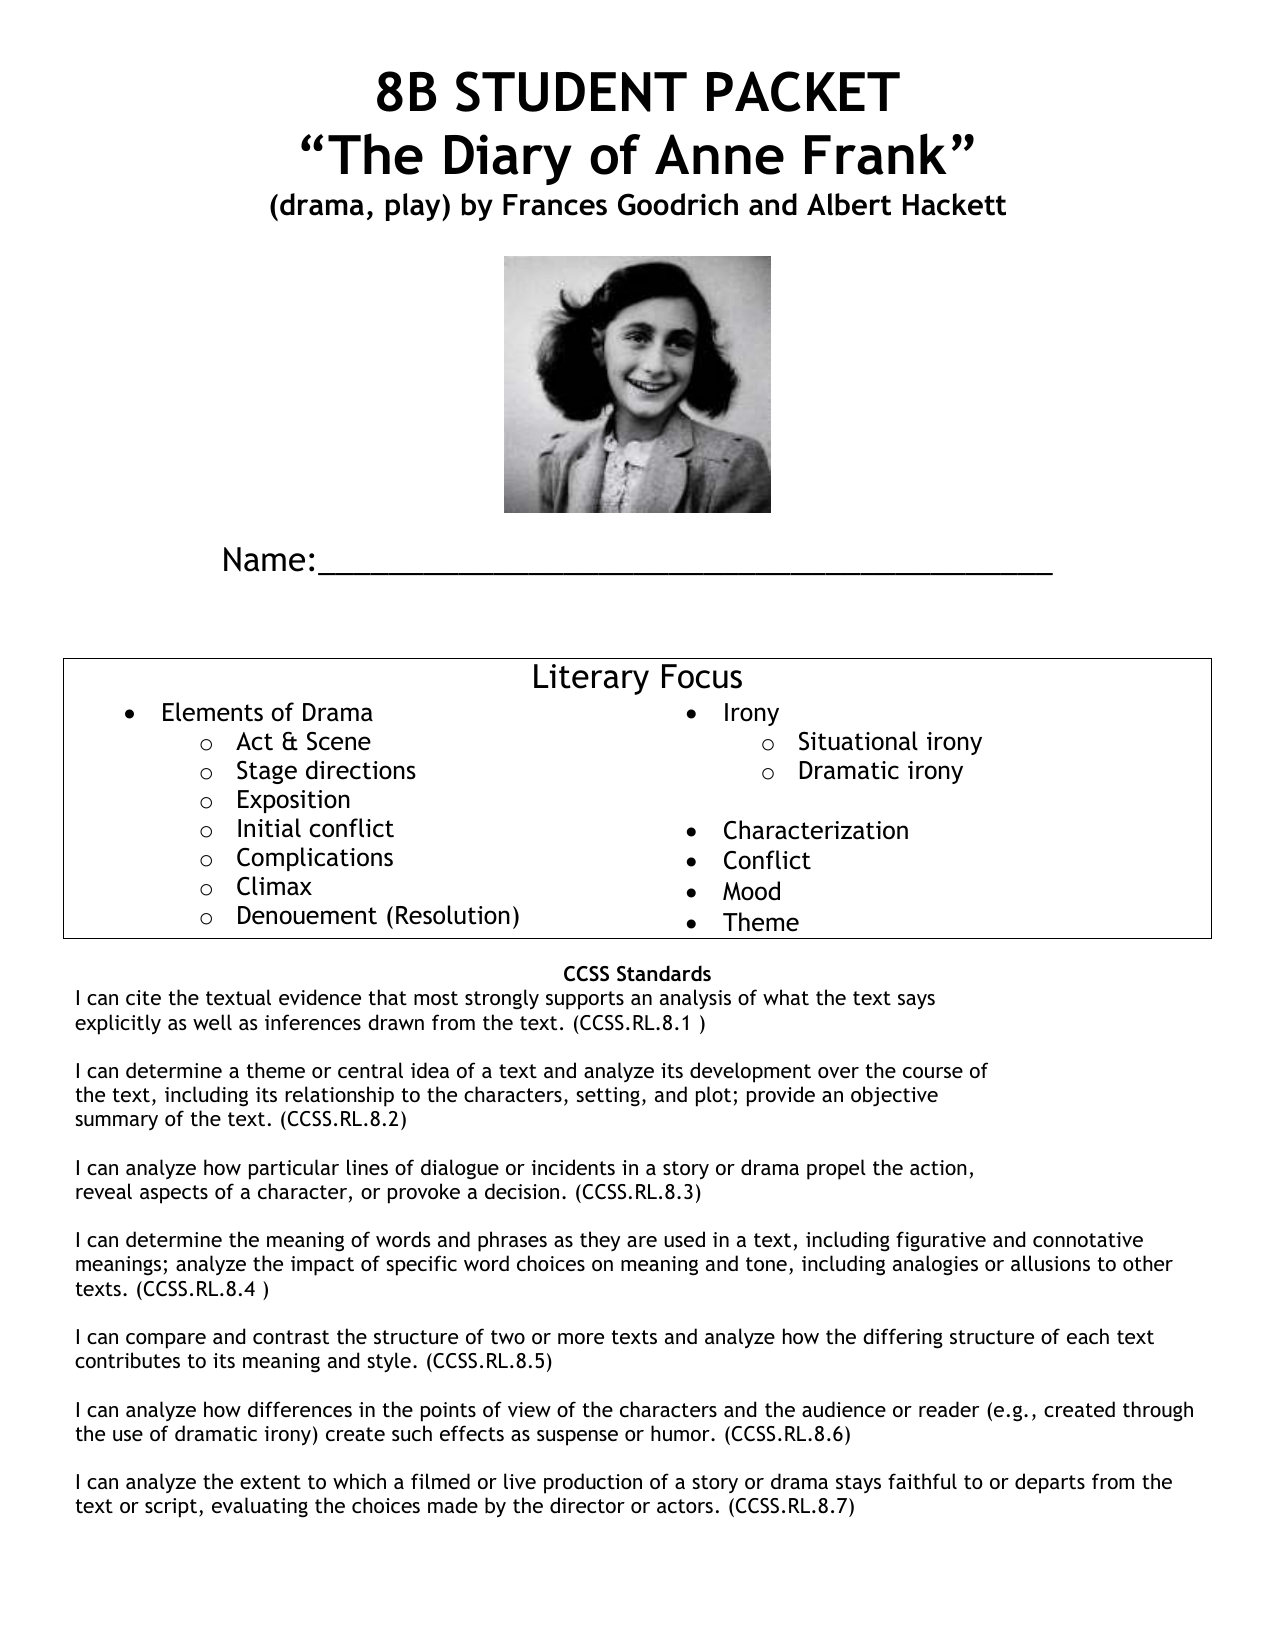 The Diary Of Anne Frank Setting And Historical Background